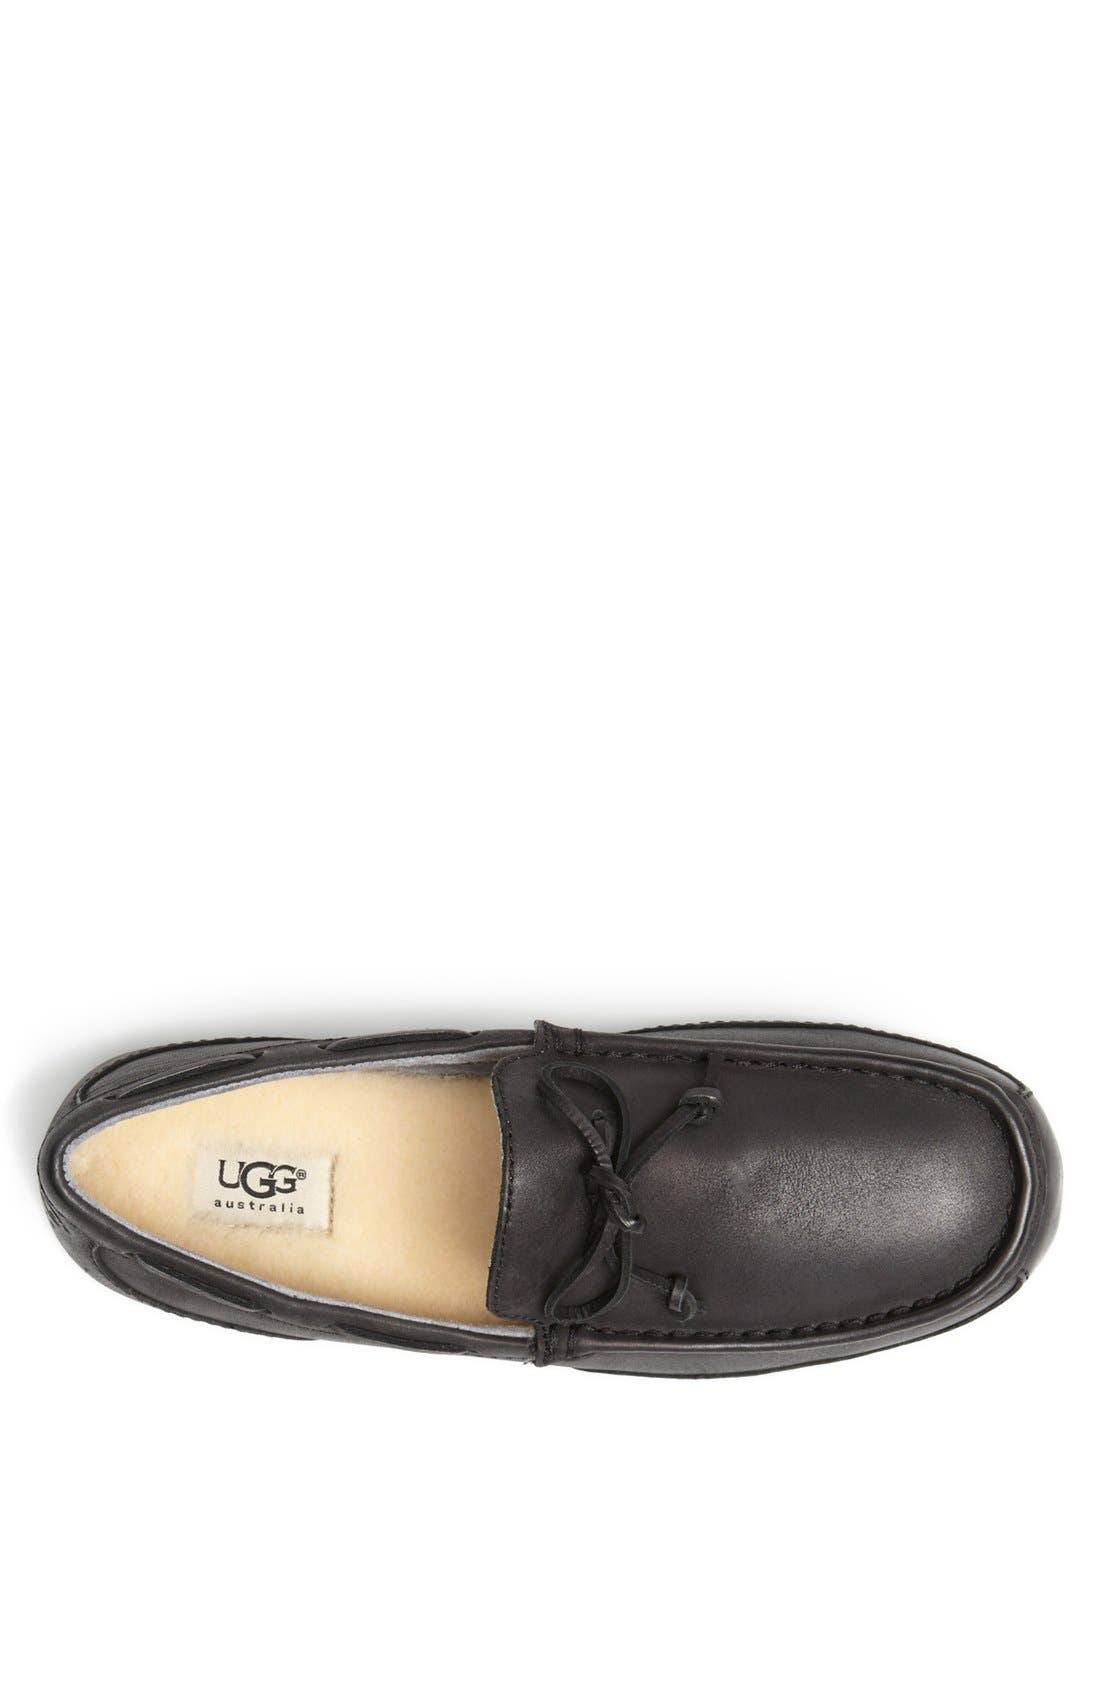 'Chester' Driving Loafer,                             Alternate thumbnail 3, color,                             001